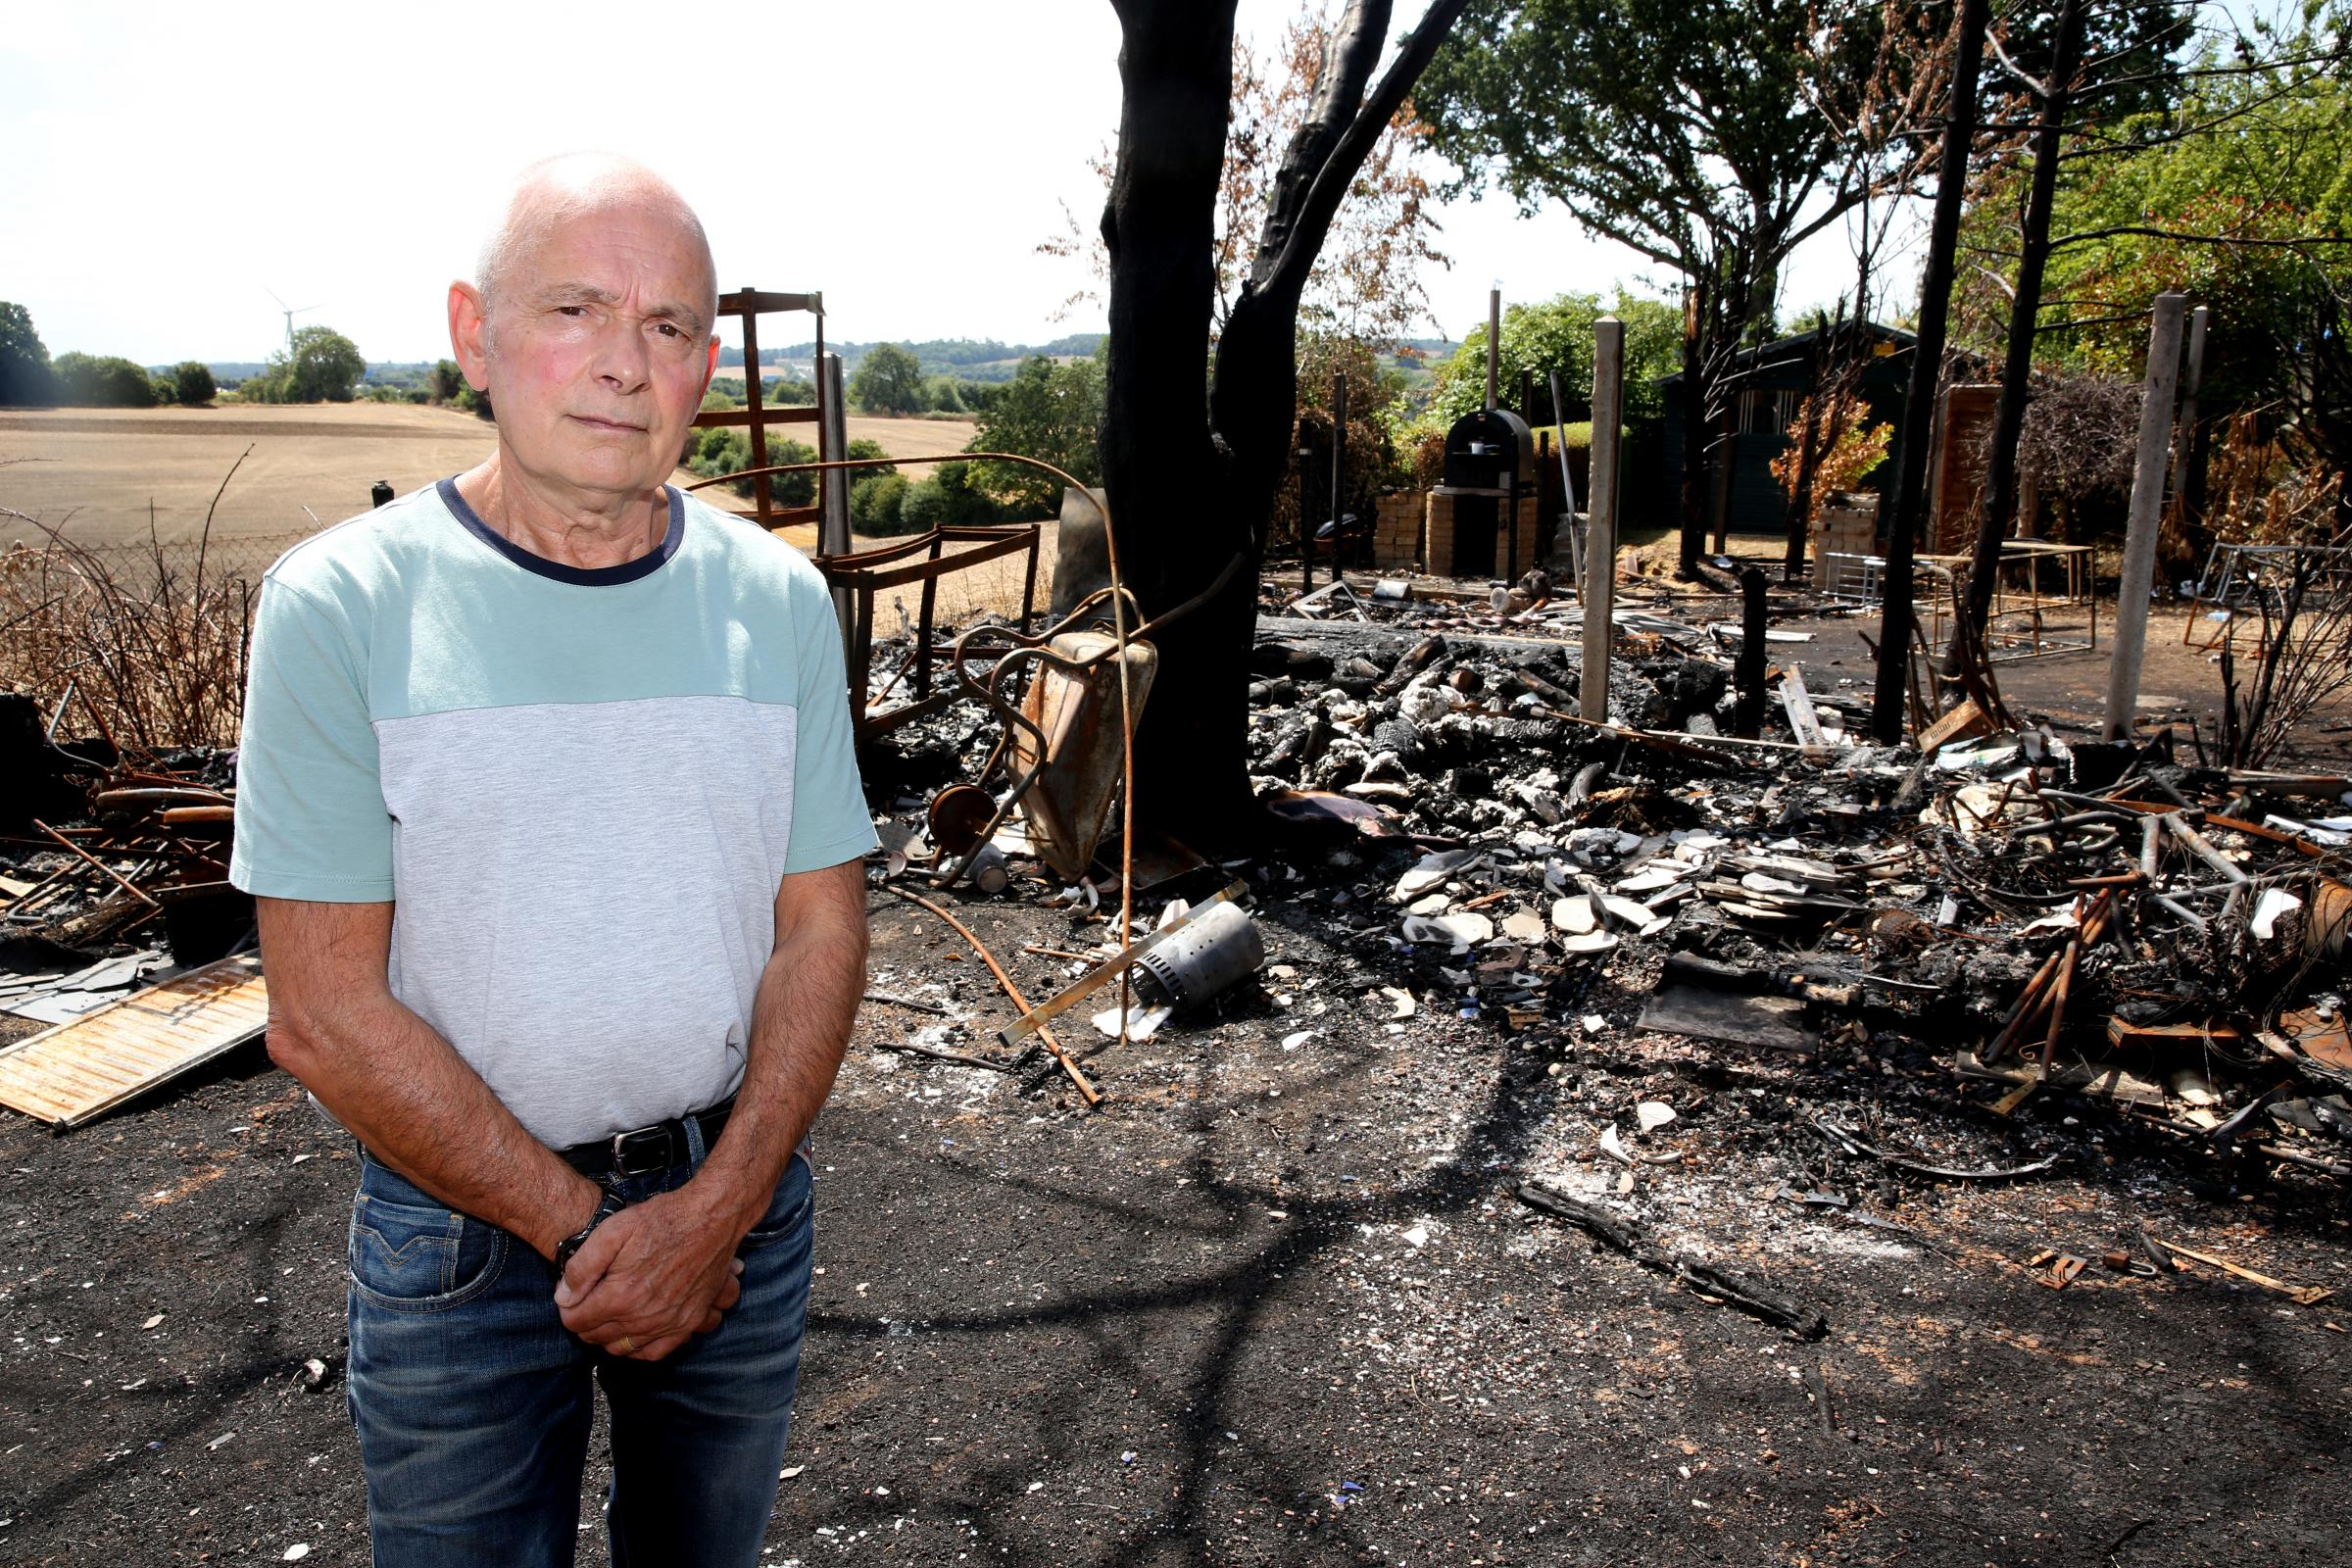 Fire engulfs family property while they watch on social media